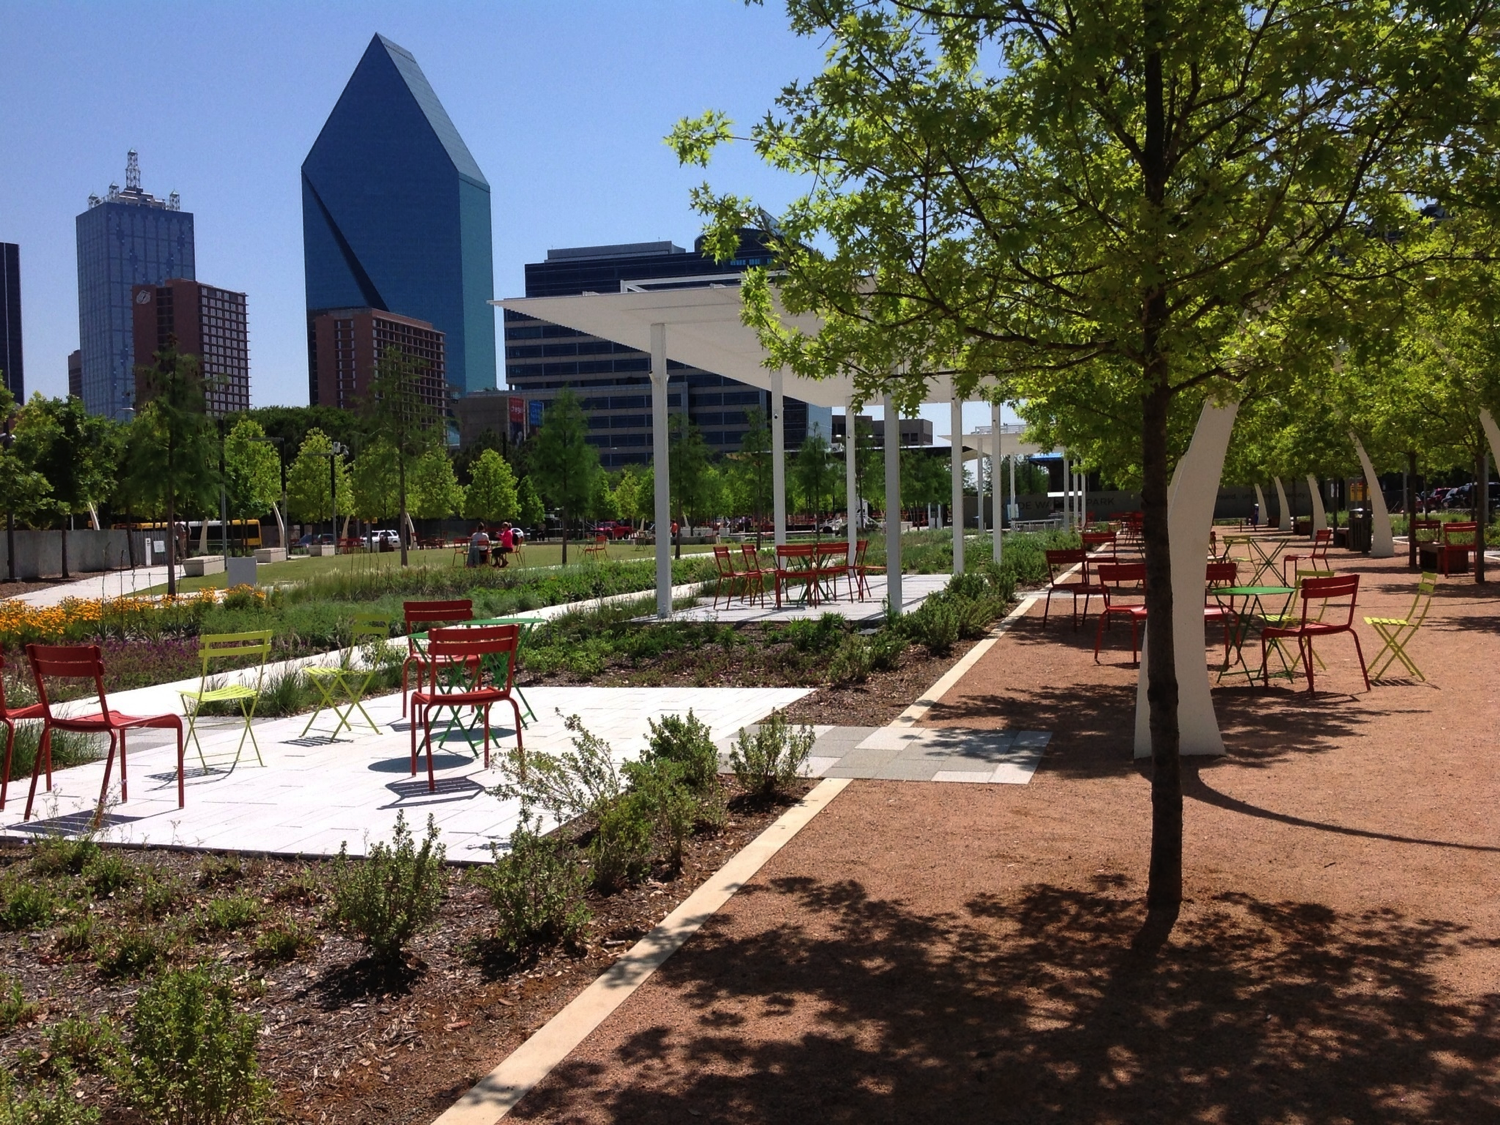 Sunny Day at Klyde Warren Park by Kevin 1086 via Wikimedia Commons (CC BY-SA 3.0)